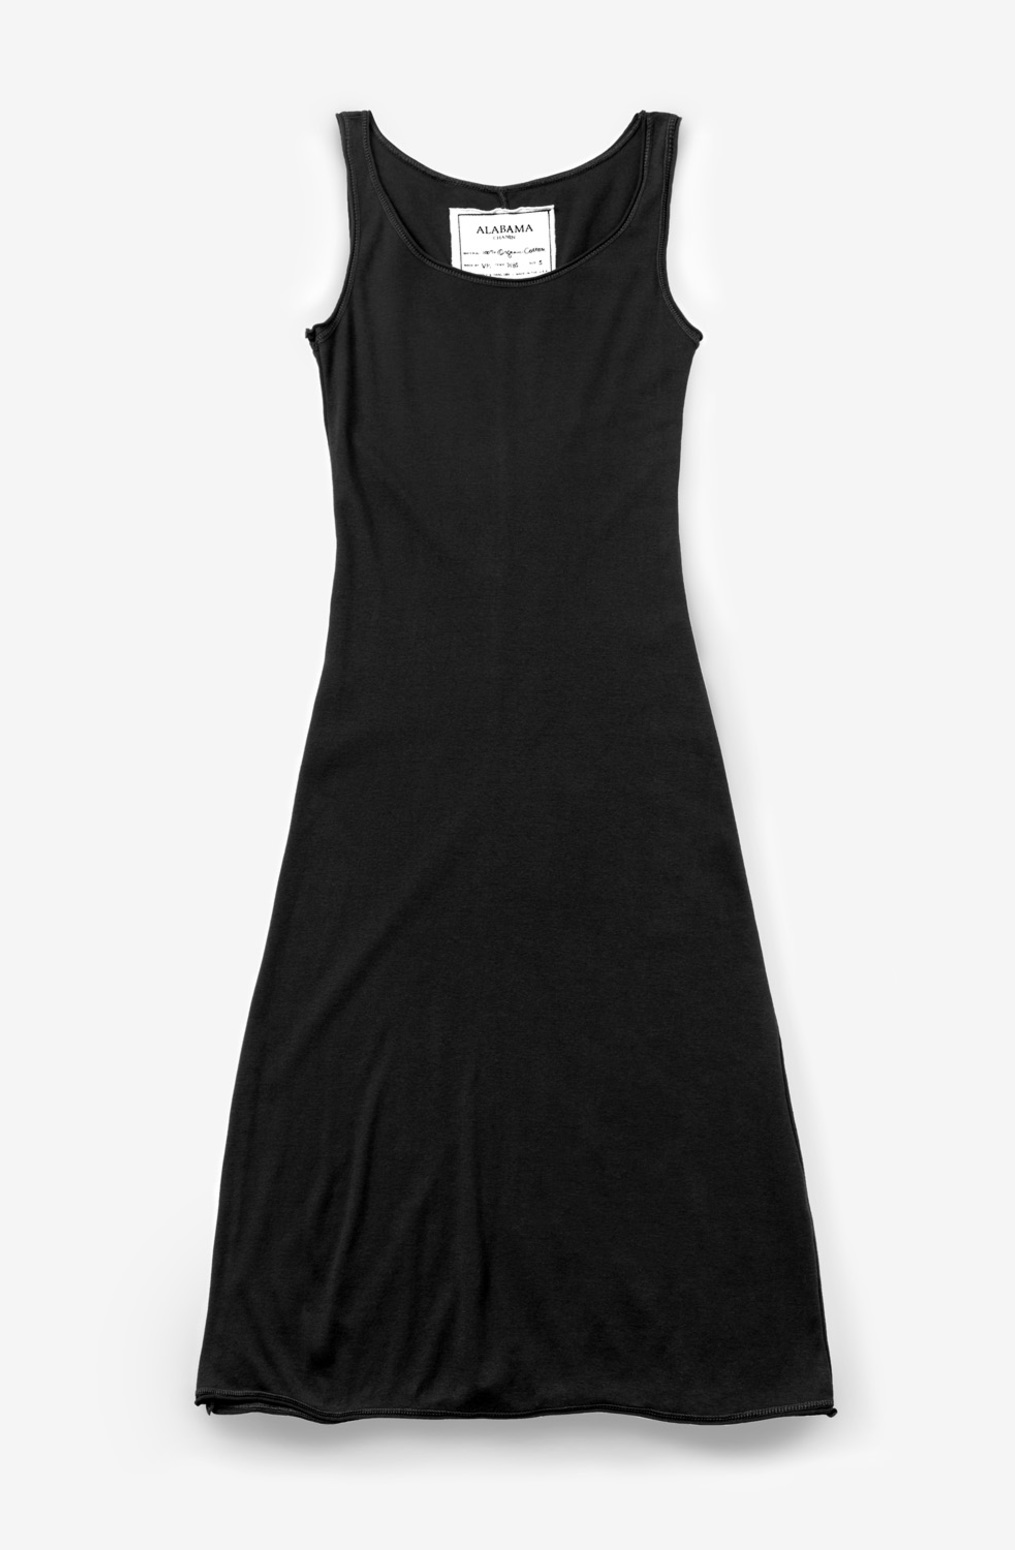 Alabama chanin womens layering slip dress 1